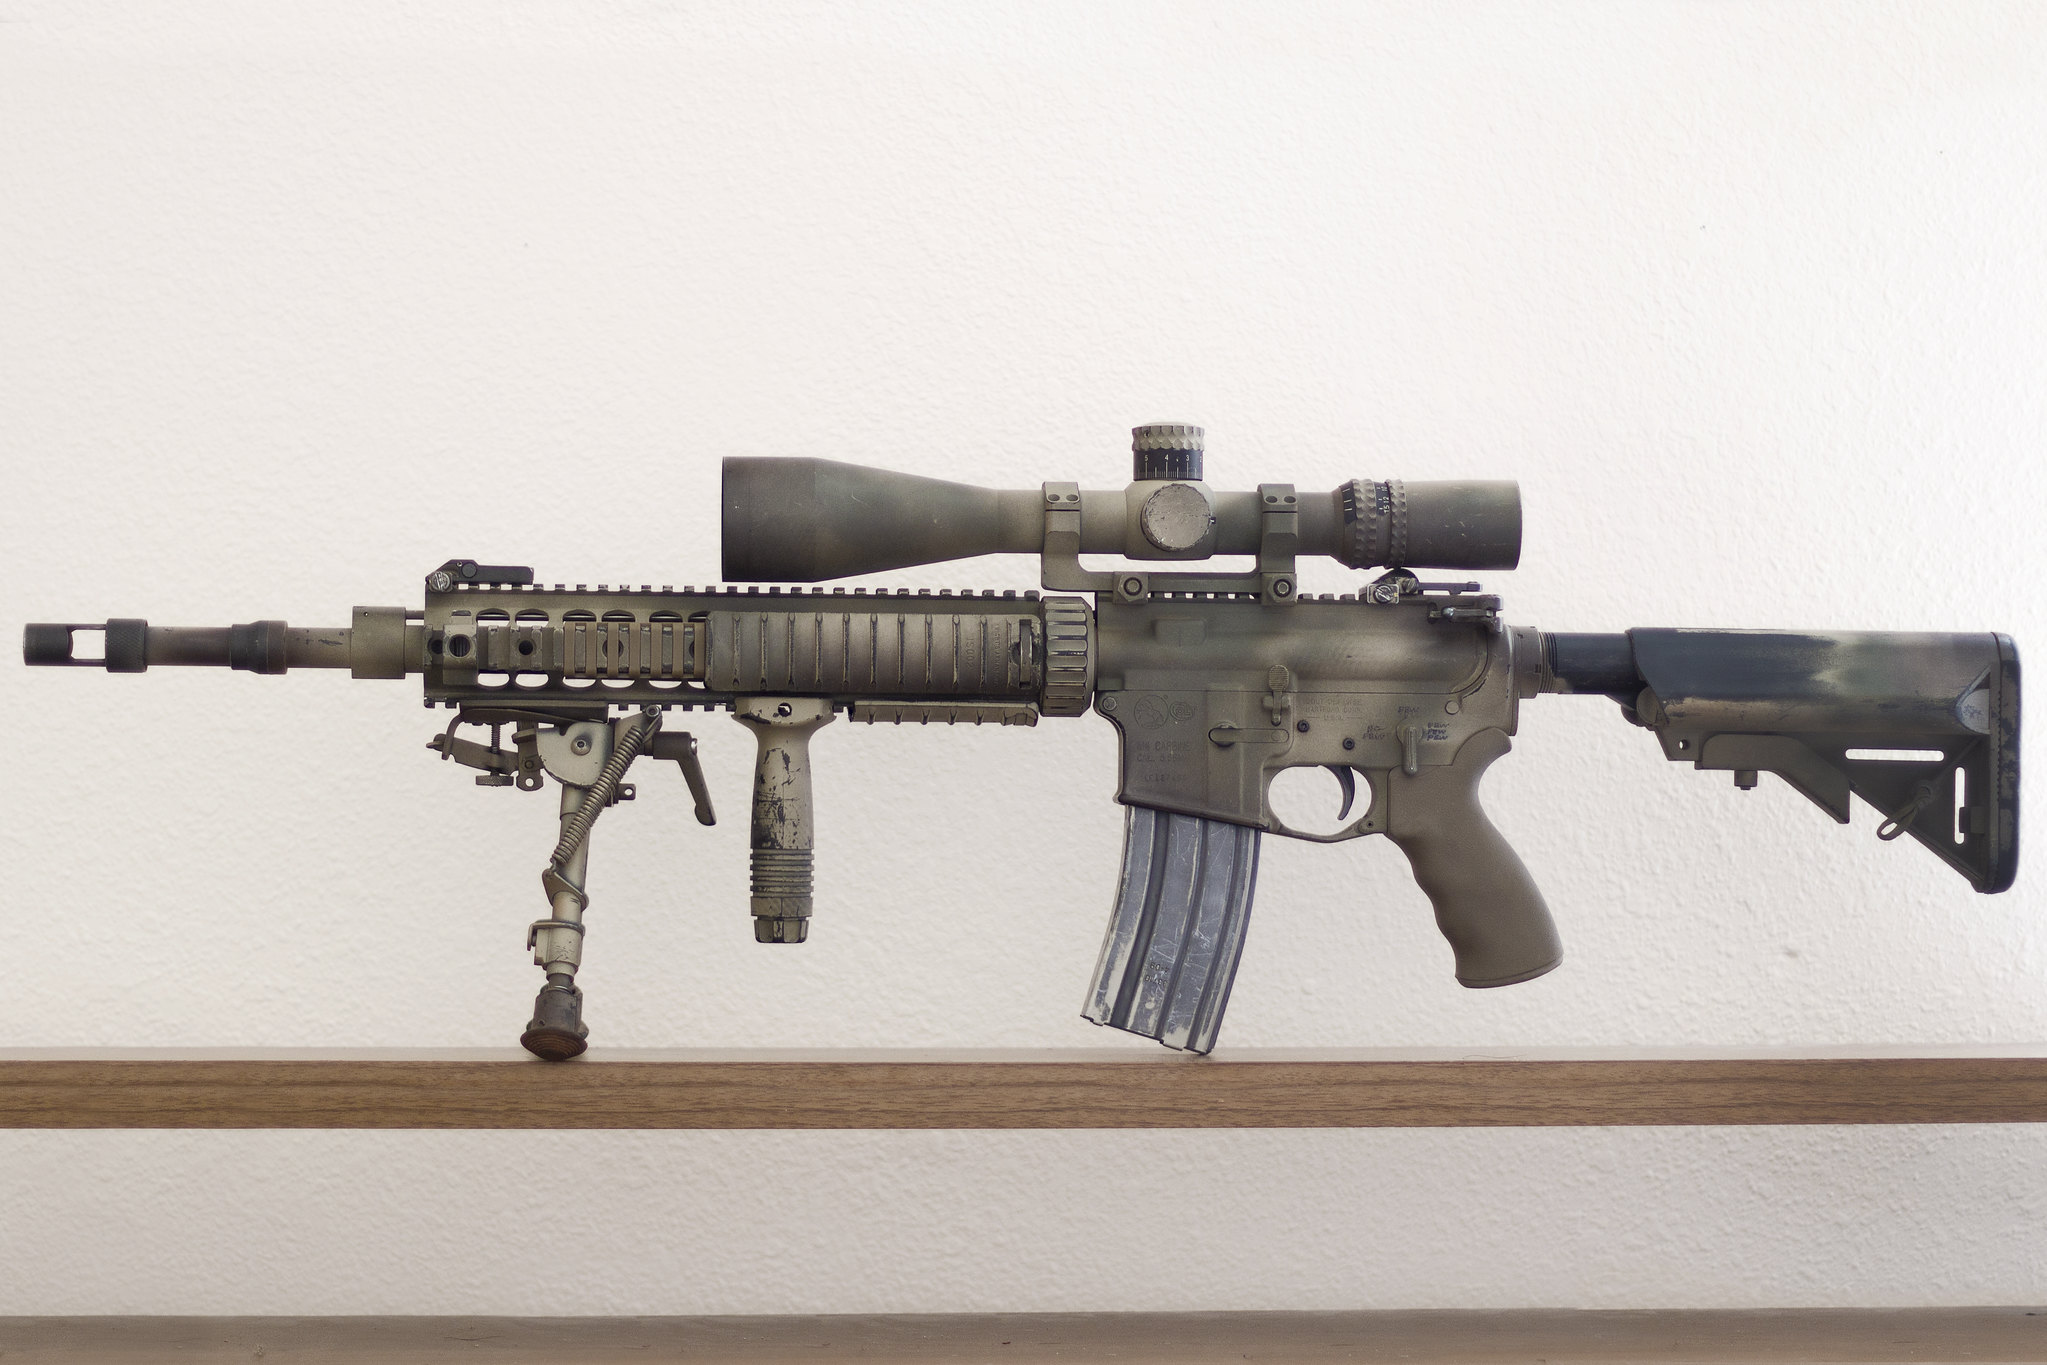 Official Mk12 Mod0, Mod1, Modh Photo And Discussion Thread